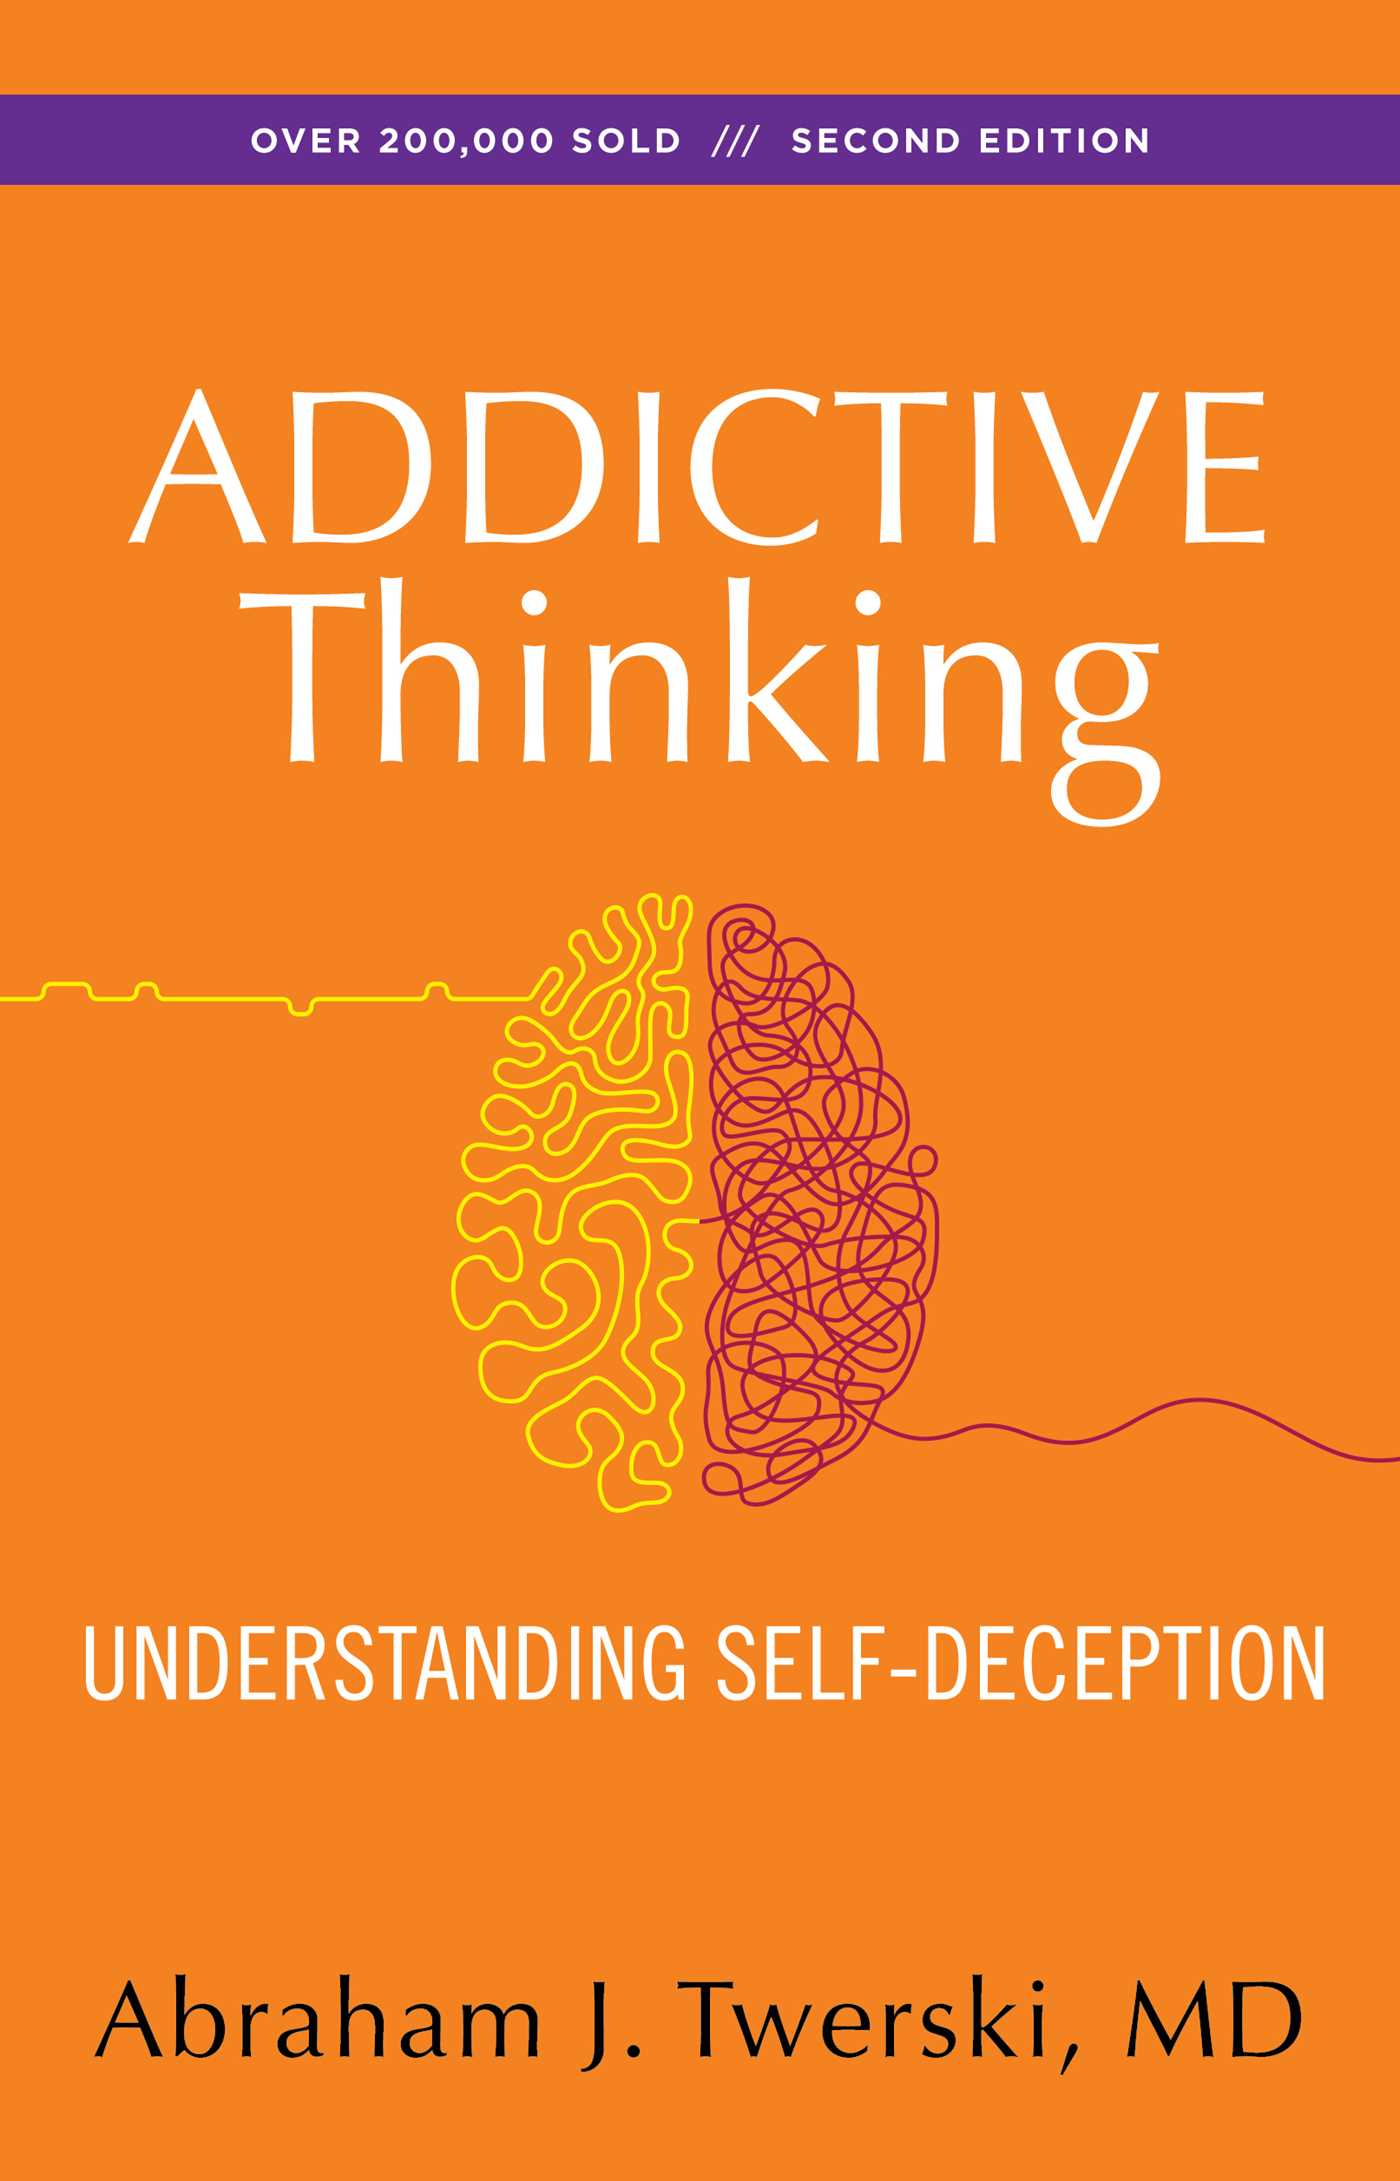 Addictive thinking 9781568381381 hr